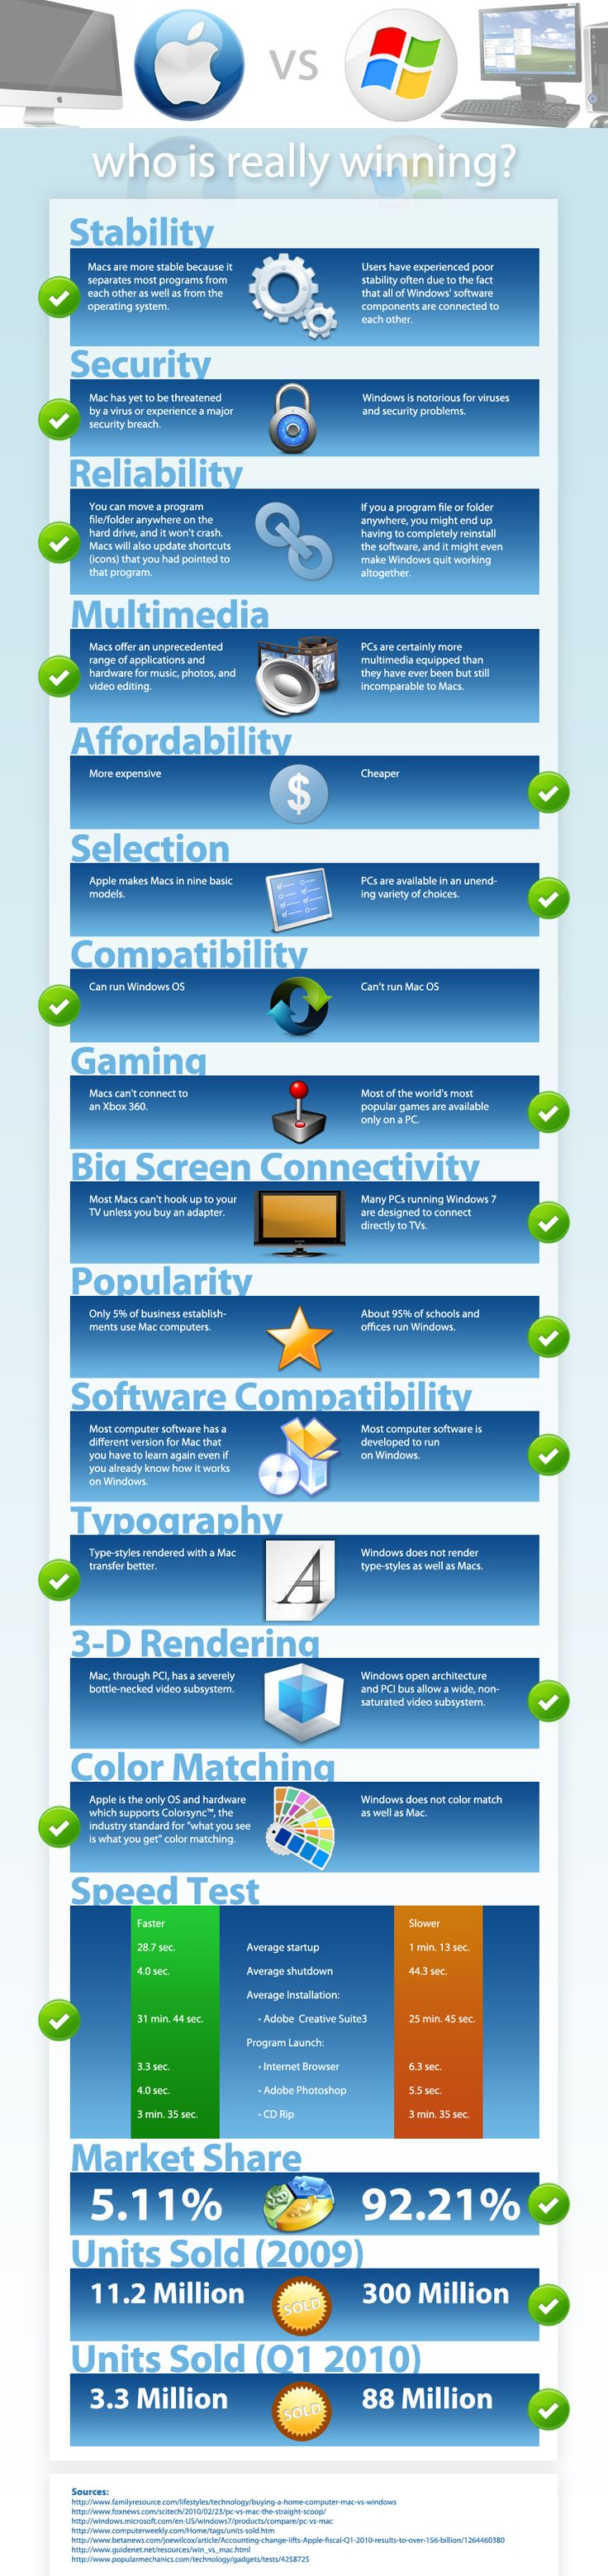 81 Best Yeah You Gotta Love Technology Images On Pinterest Apple Laptoptech Laptop Repair Specialist Spare Parts Mac Vs Pc I Agree With Everything But Security Macs Aren